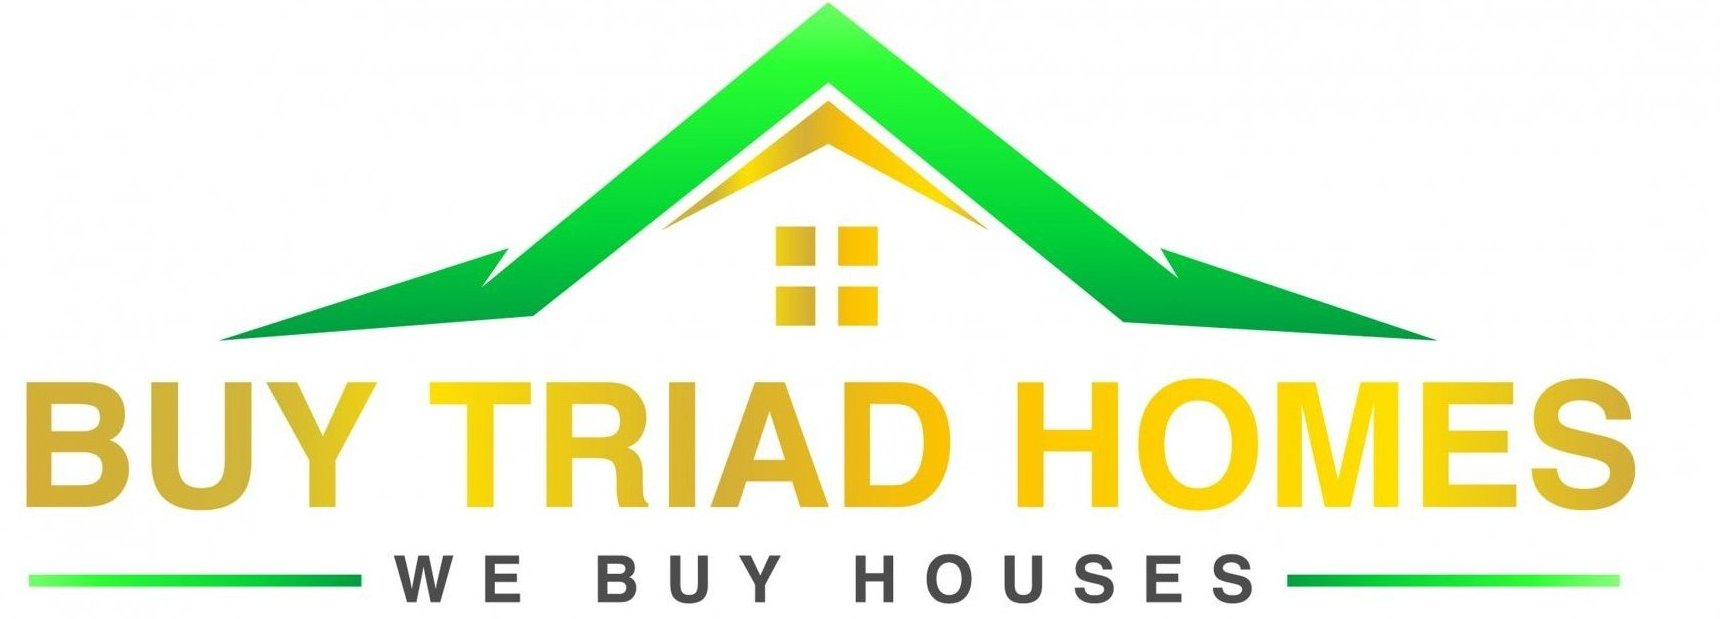 Buy Triad Homes logo